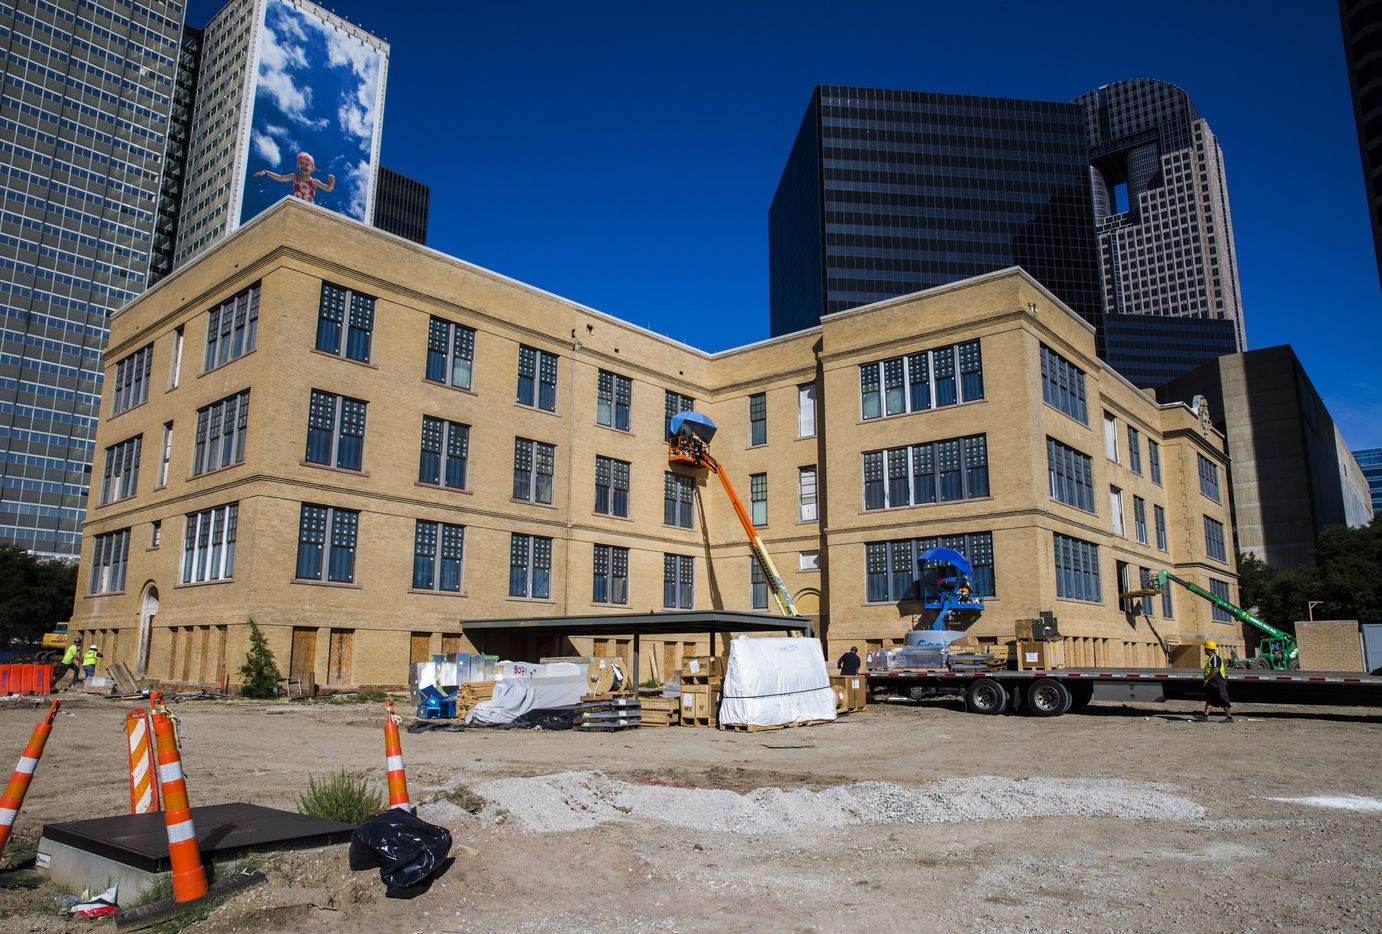 Developer Matthews Southwest has been working for more than a year to restore the old Dallas High School building on Bryan Street in downtown Dallas. It will reopen later this year as office and retail space.